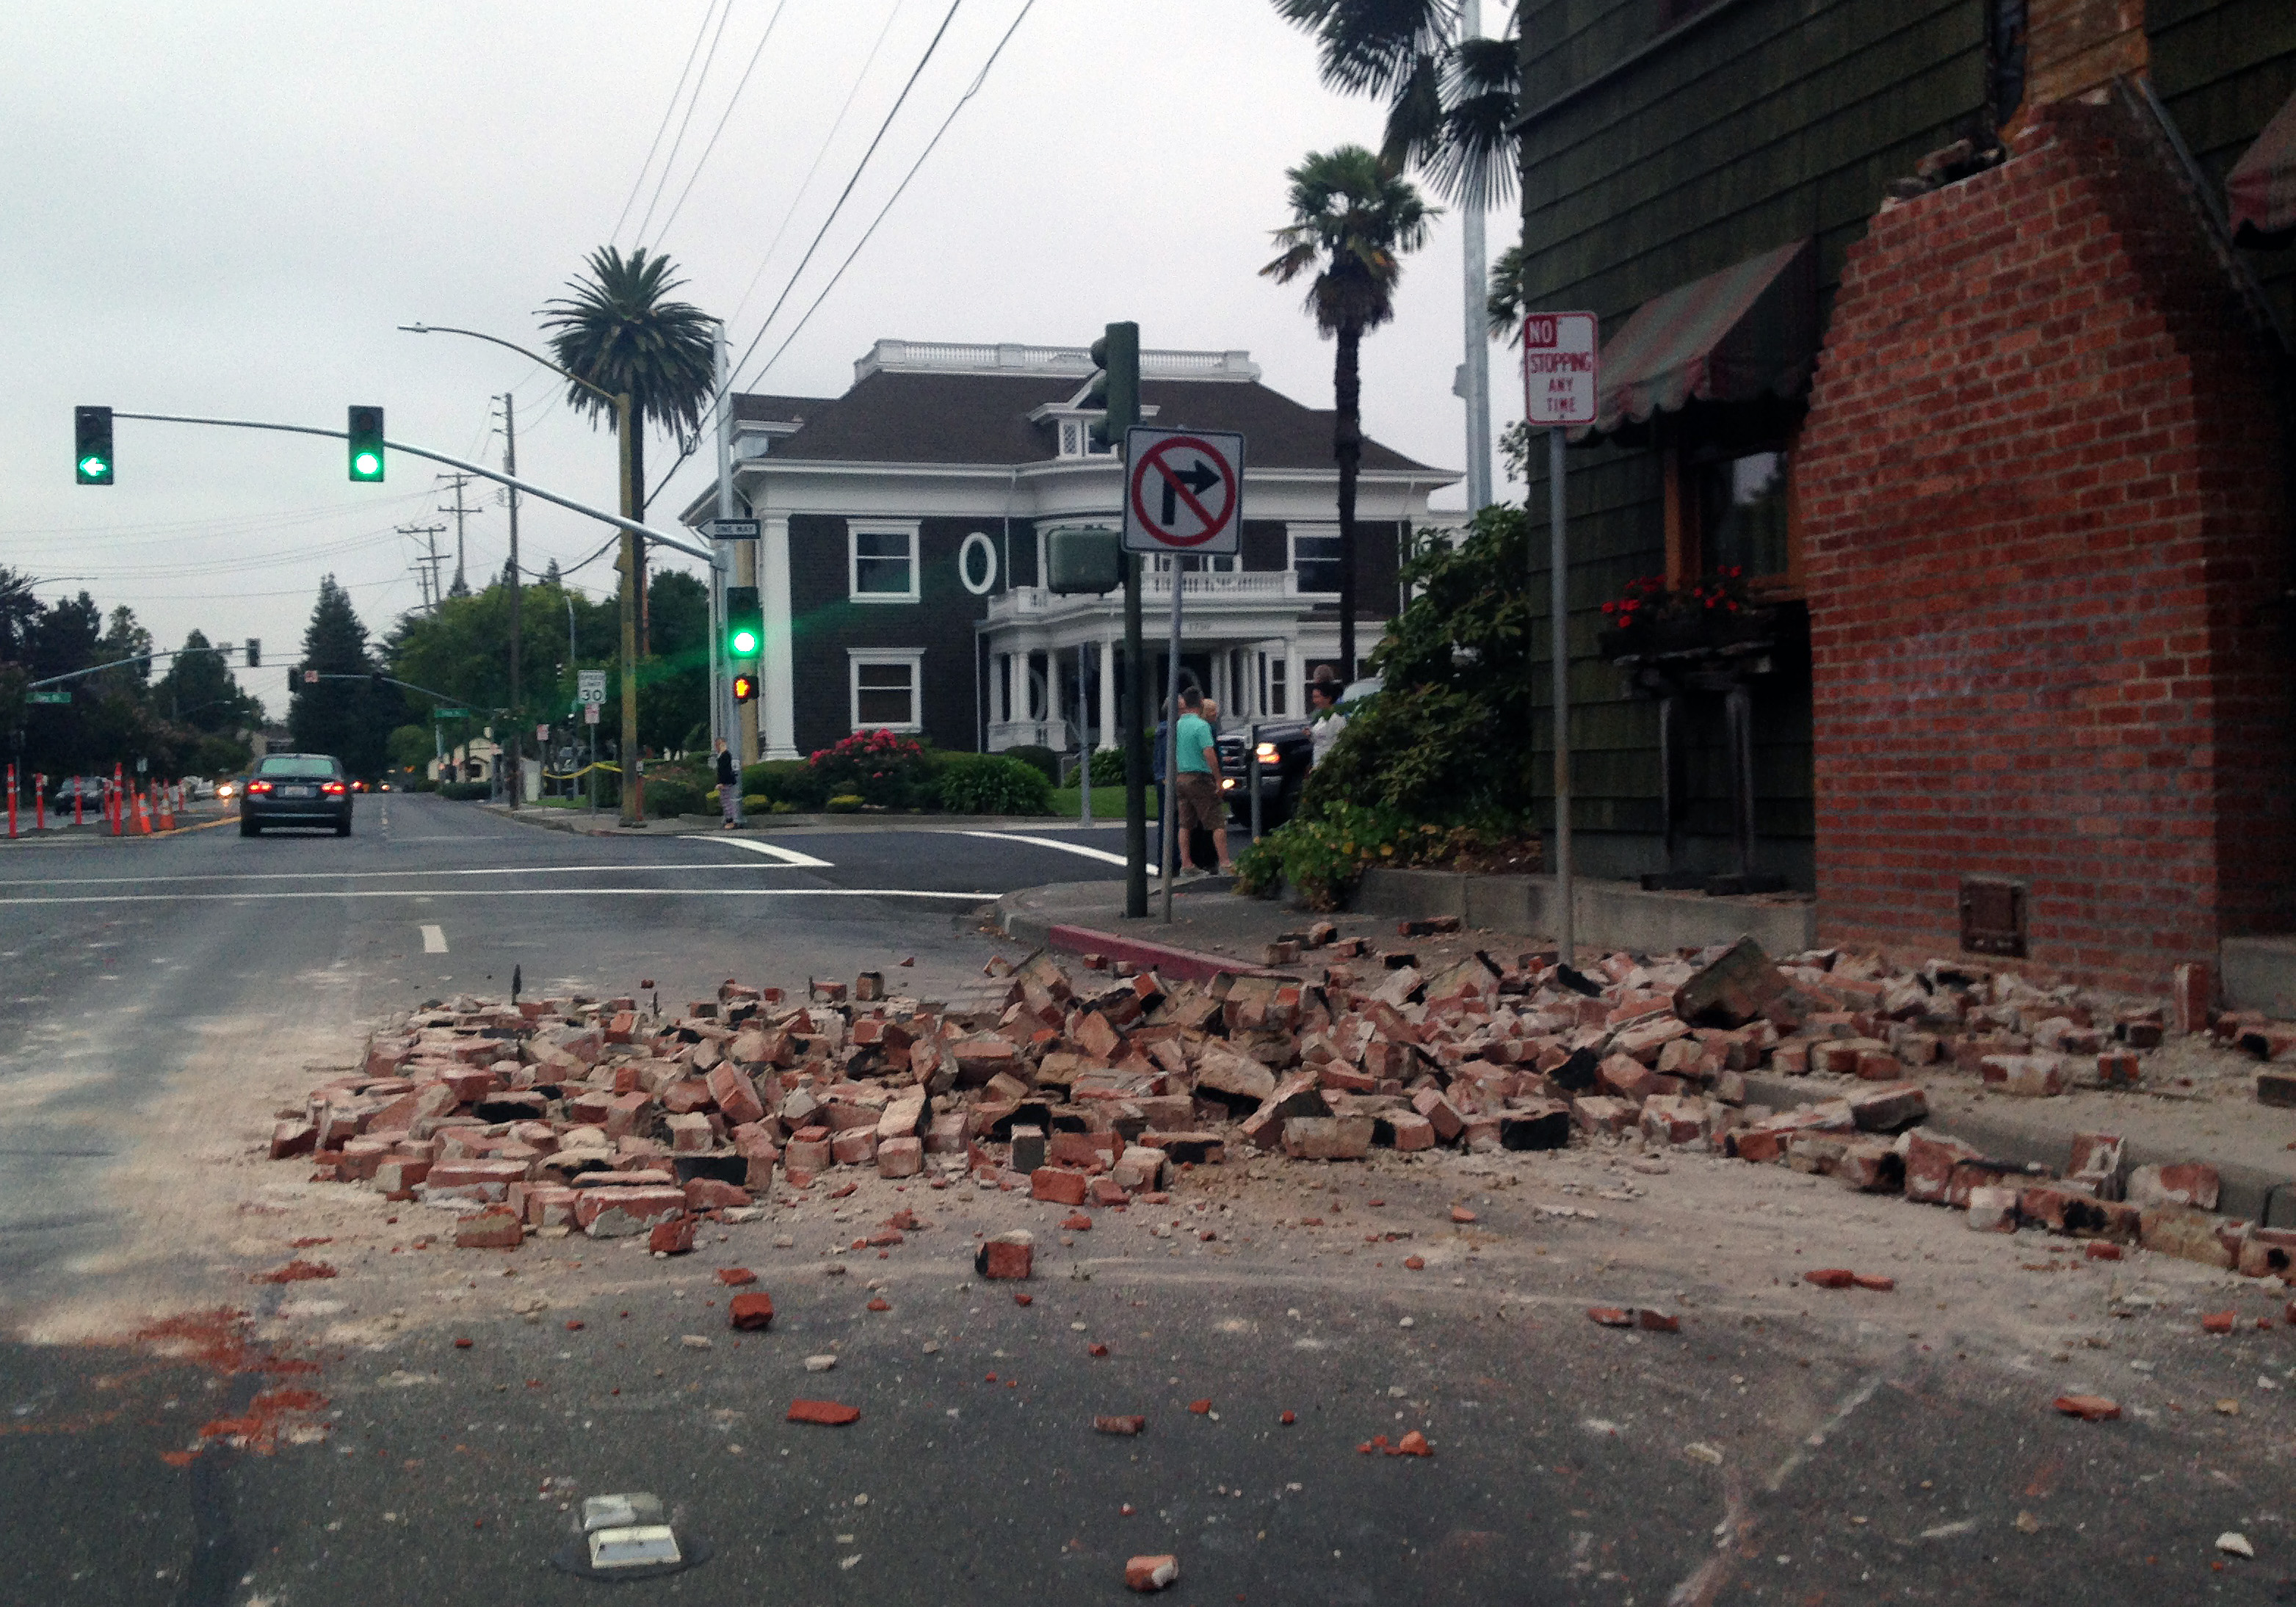 When Will the Next Big One Hit? California's Bay Area Gets Hit With Two Earthquakes in One Day